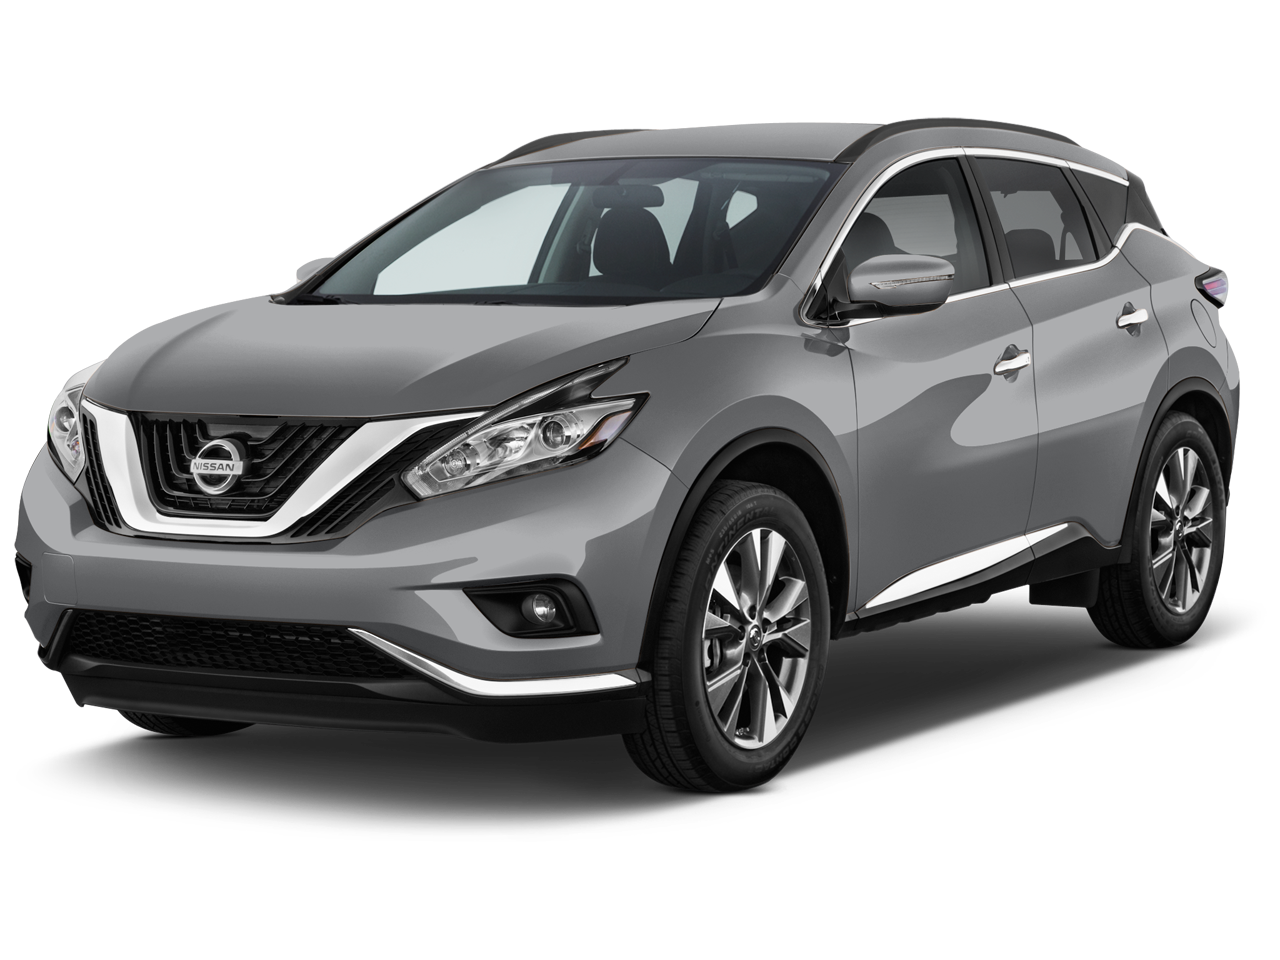 new 2017 nissan murano sl tech pkg near milford ma milford nissan. Black Bedroom Furniture Sets. Home Design Ideas